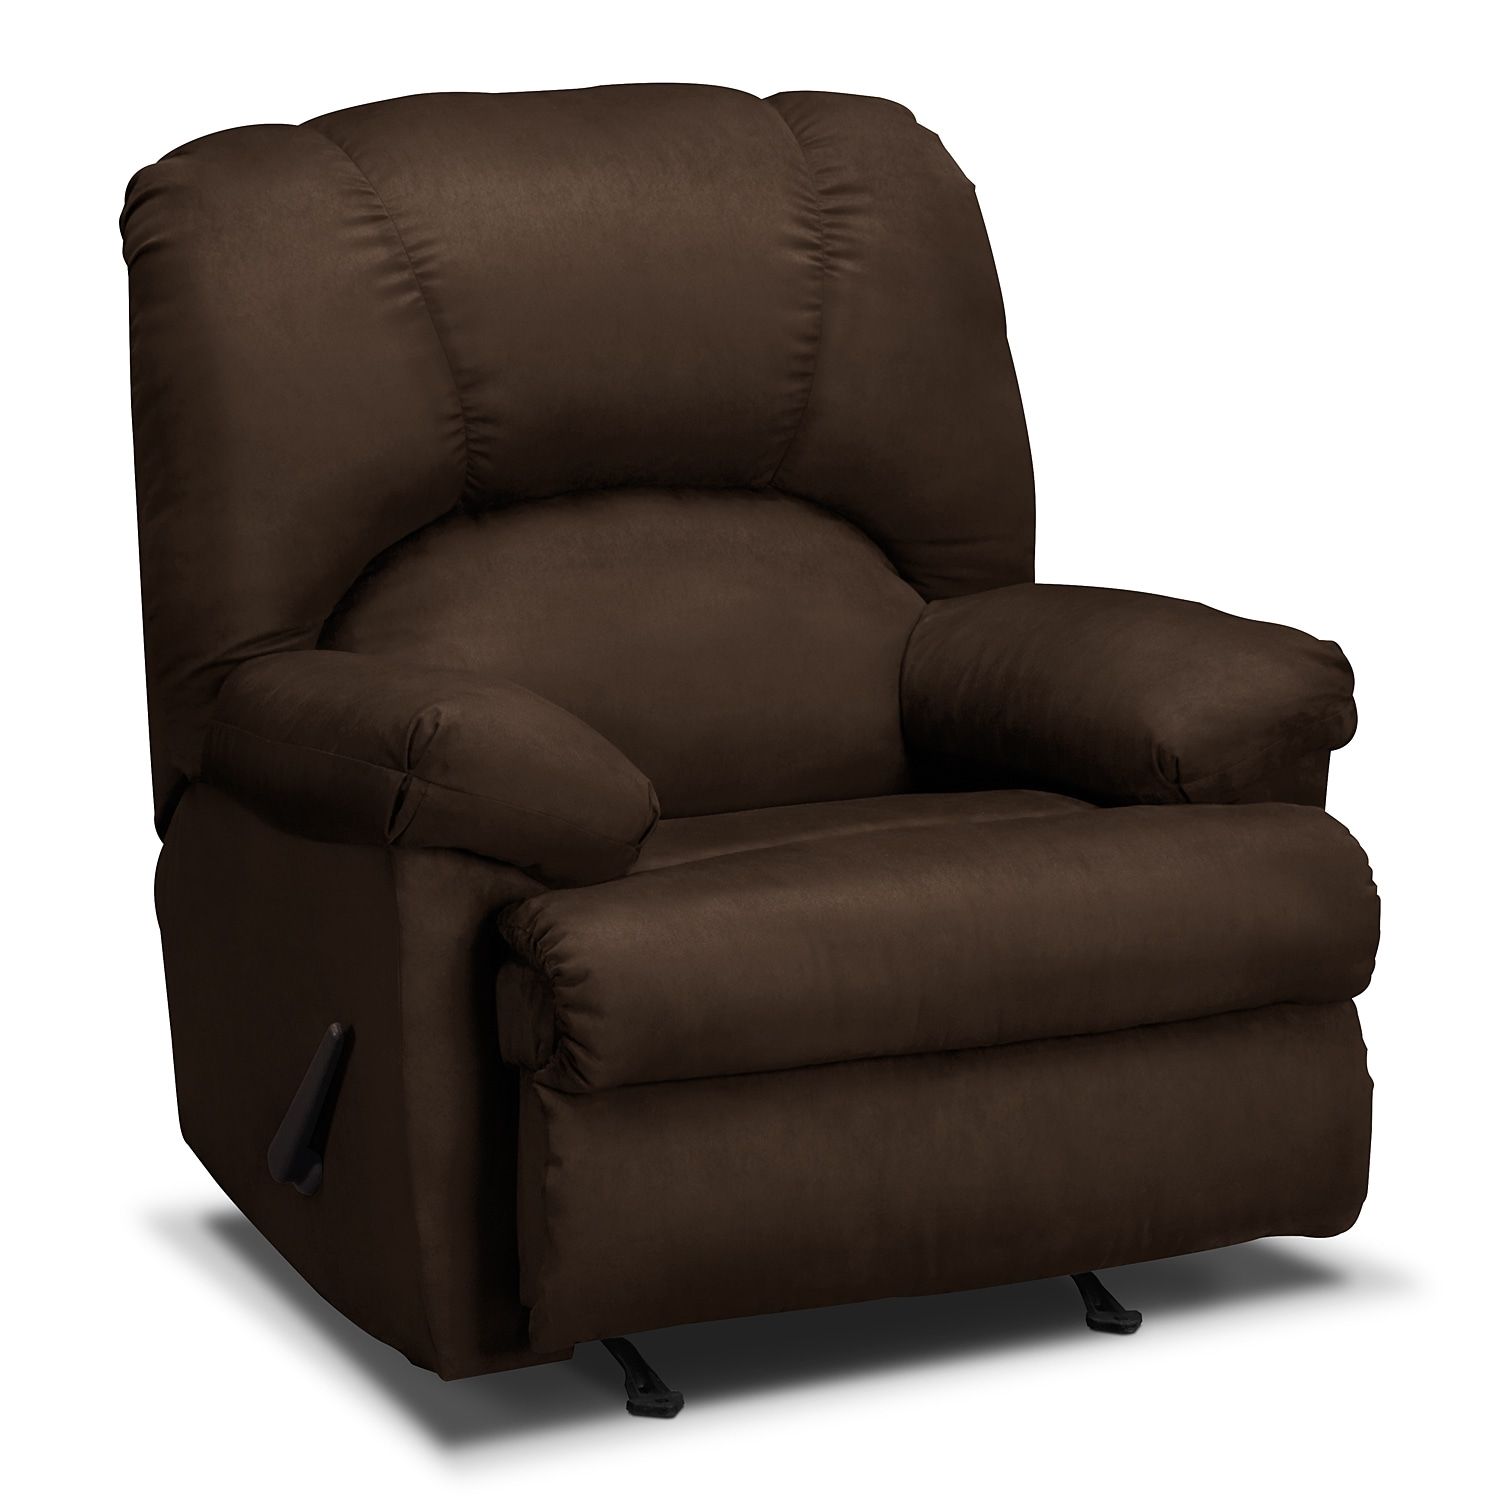 Living Room Furniture - Quincy Rocker Recliner